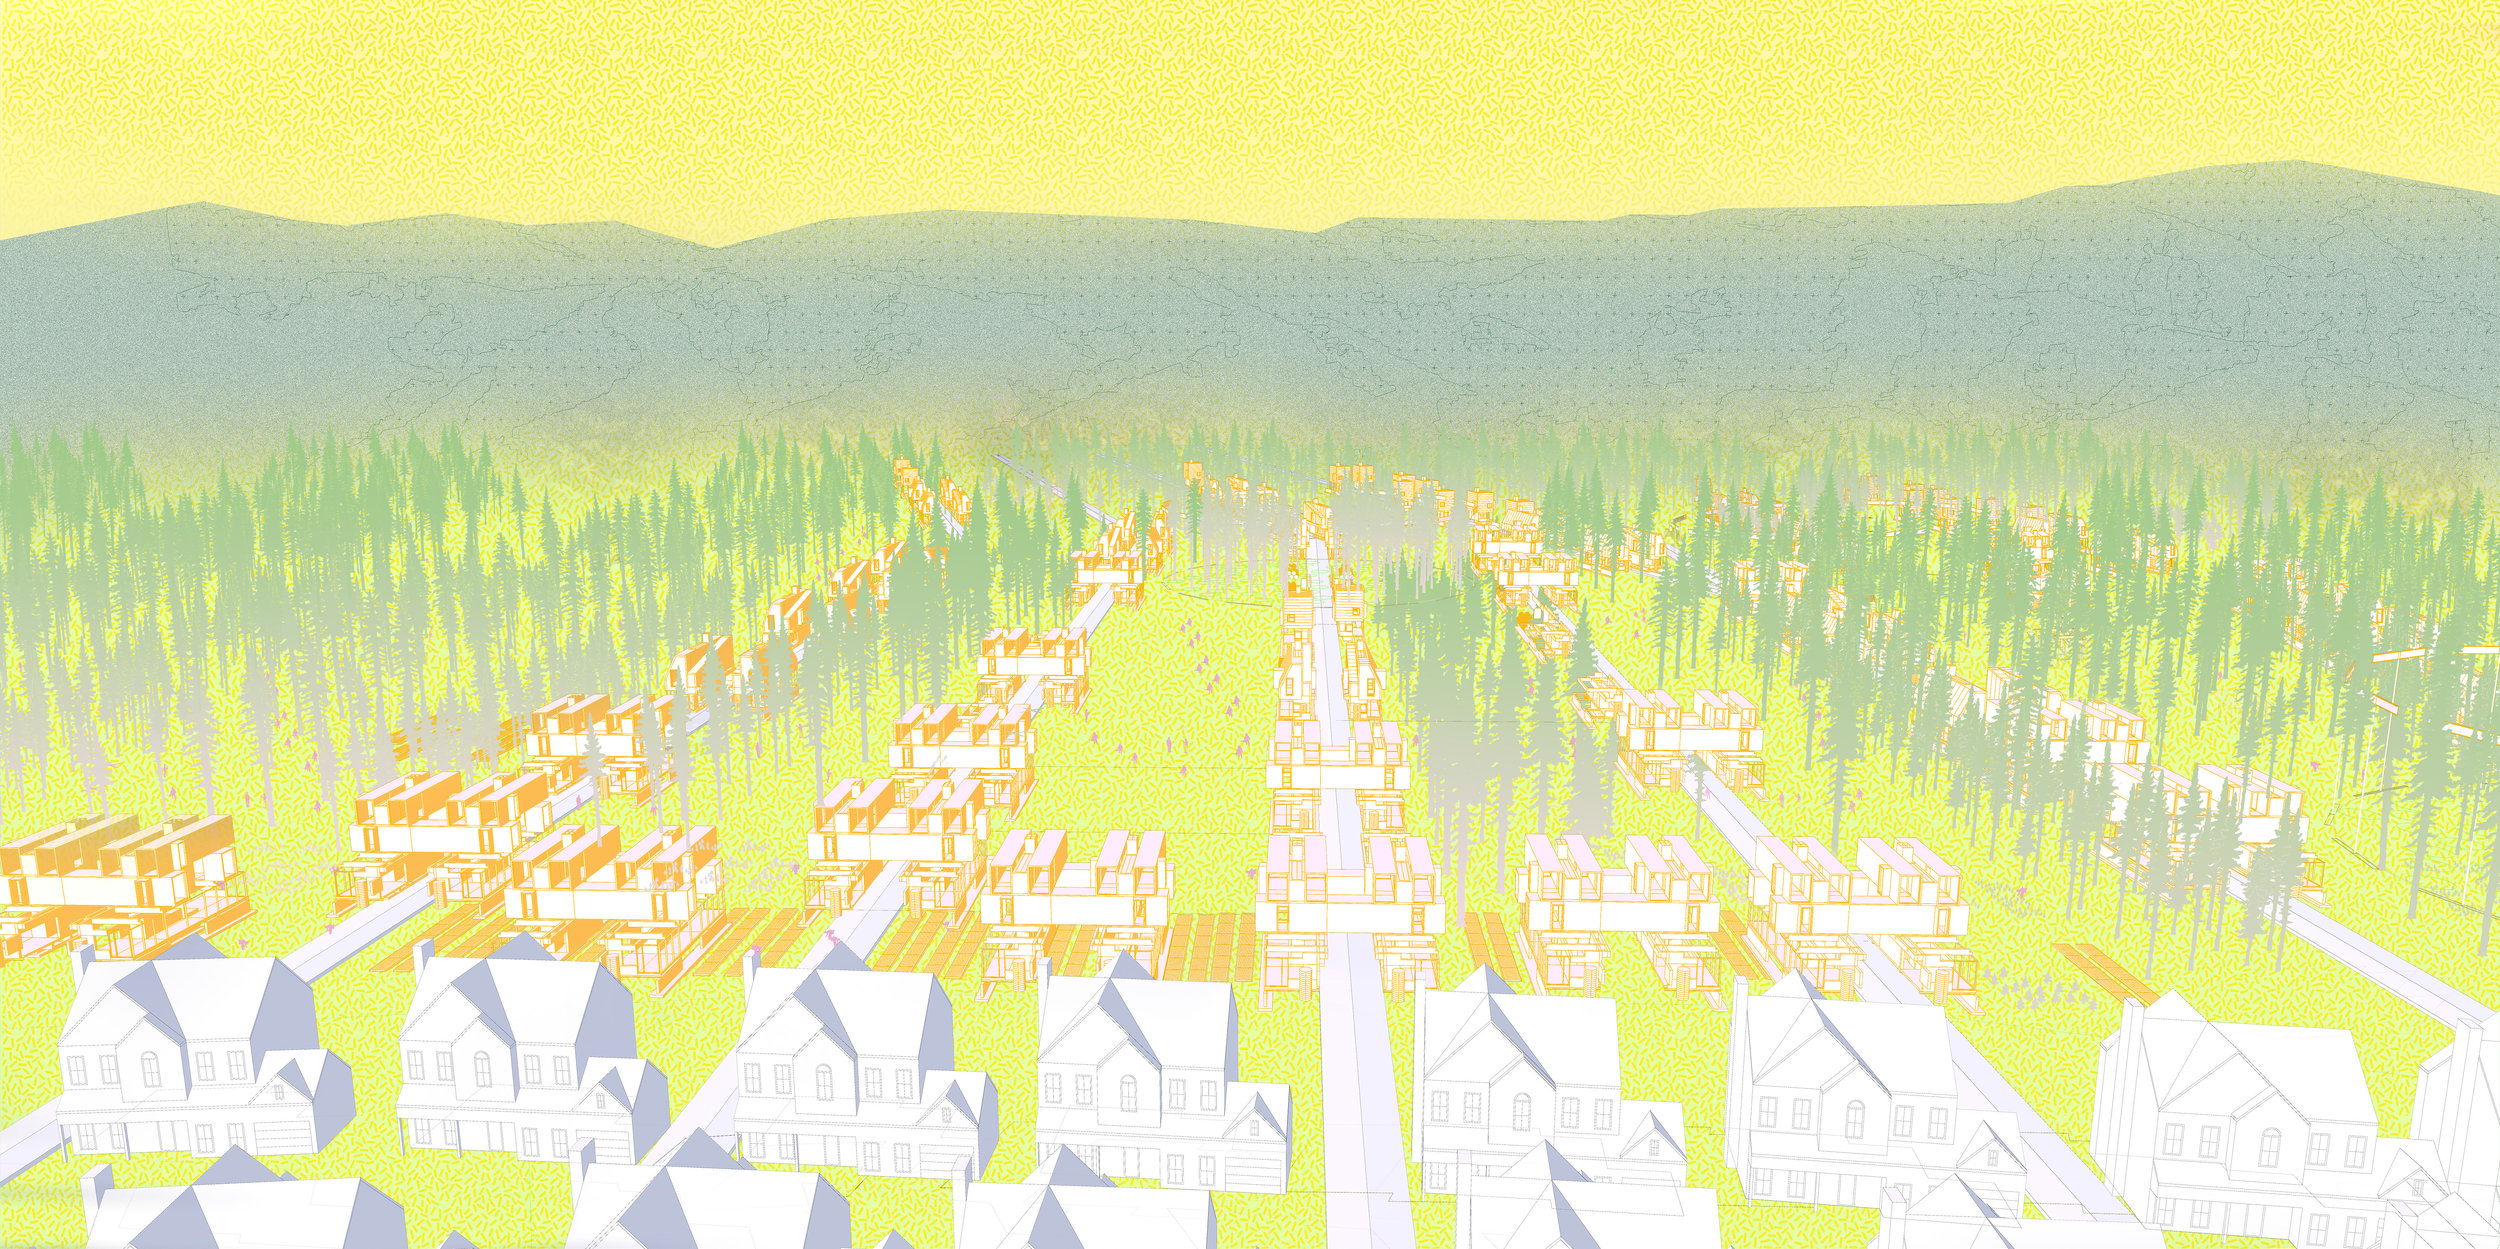 A phased proposal illustrates housing and forest integration at the new frontier.